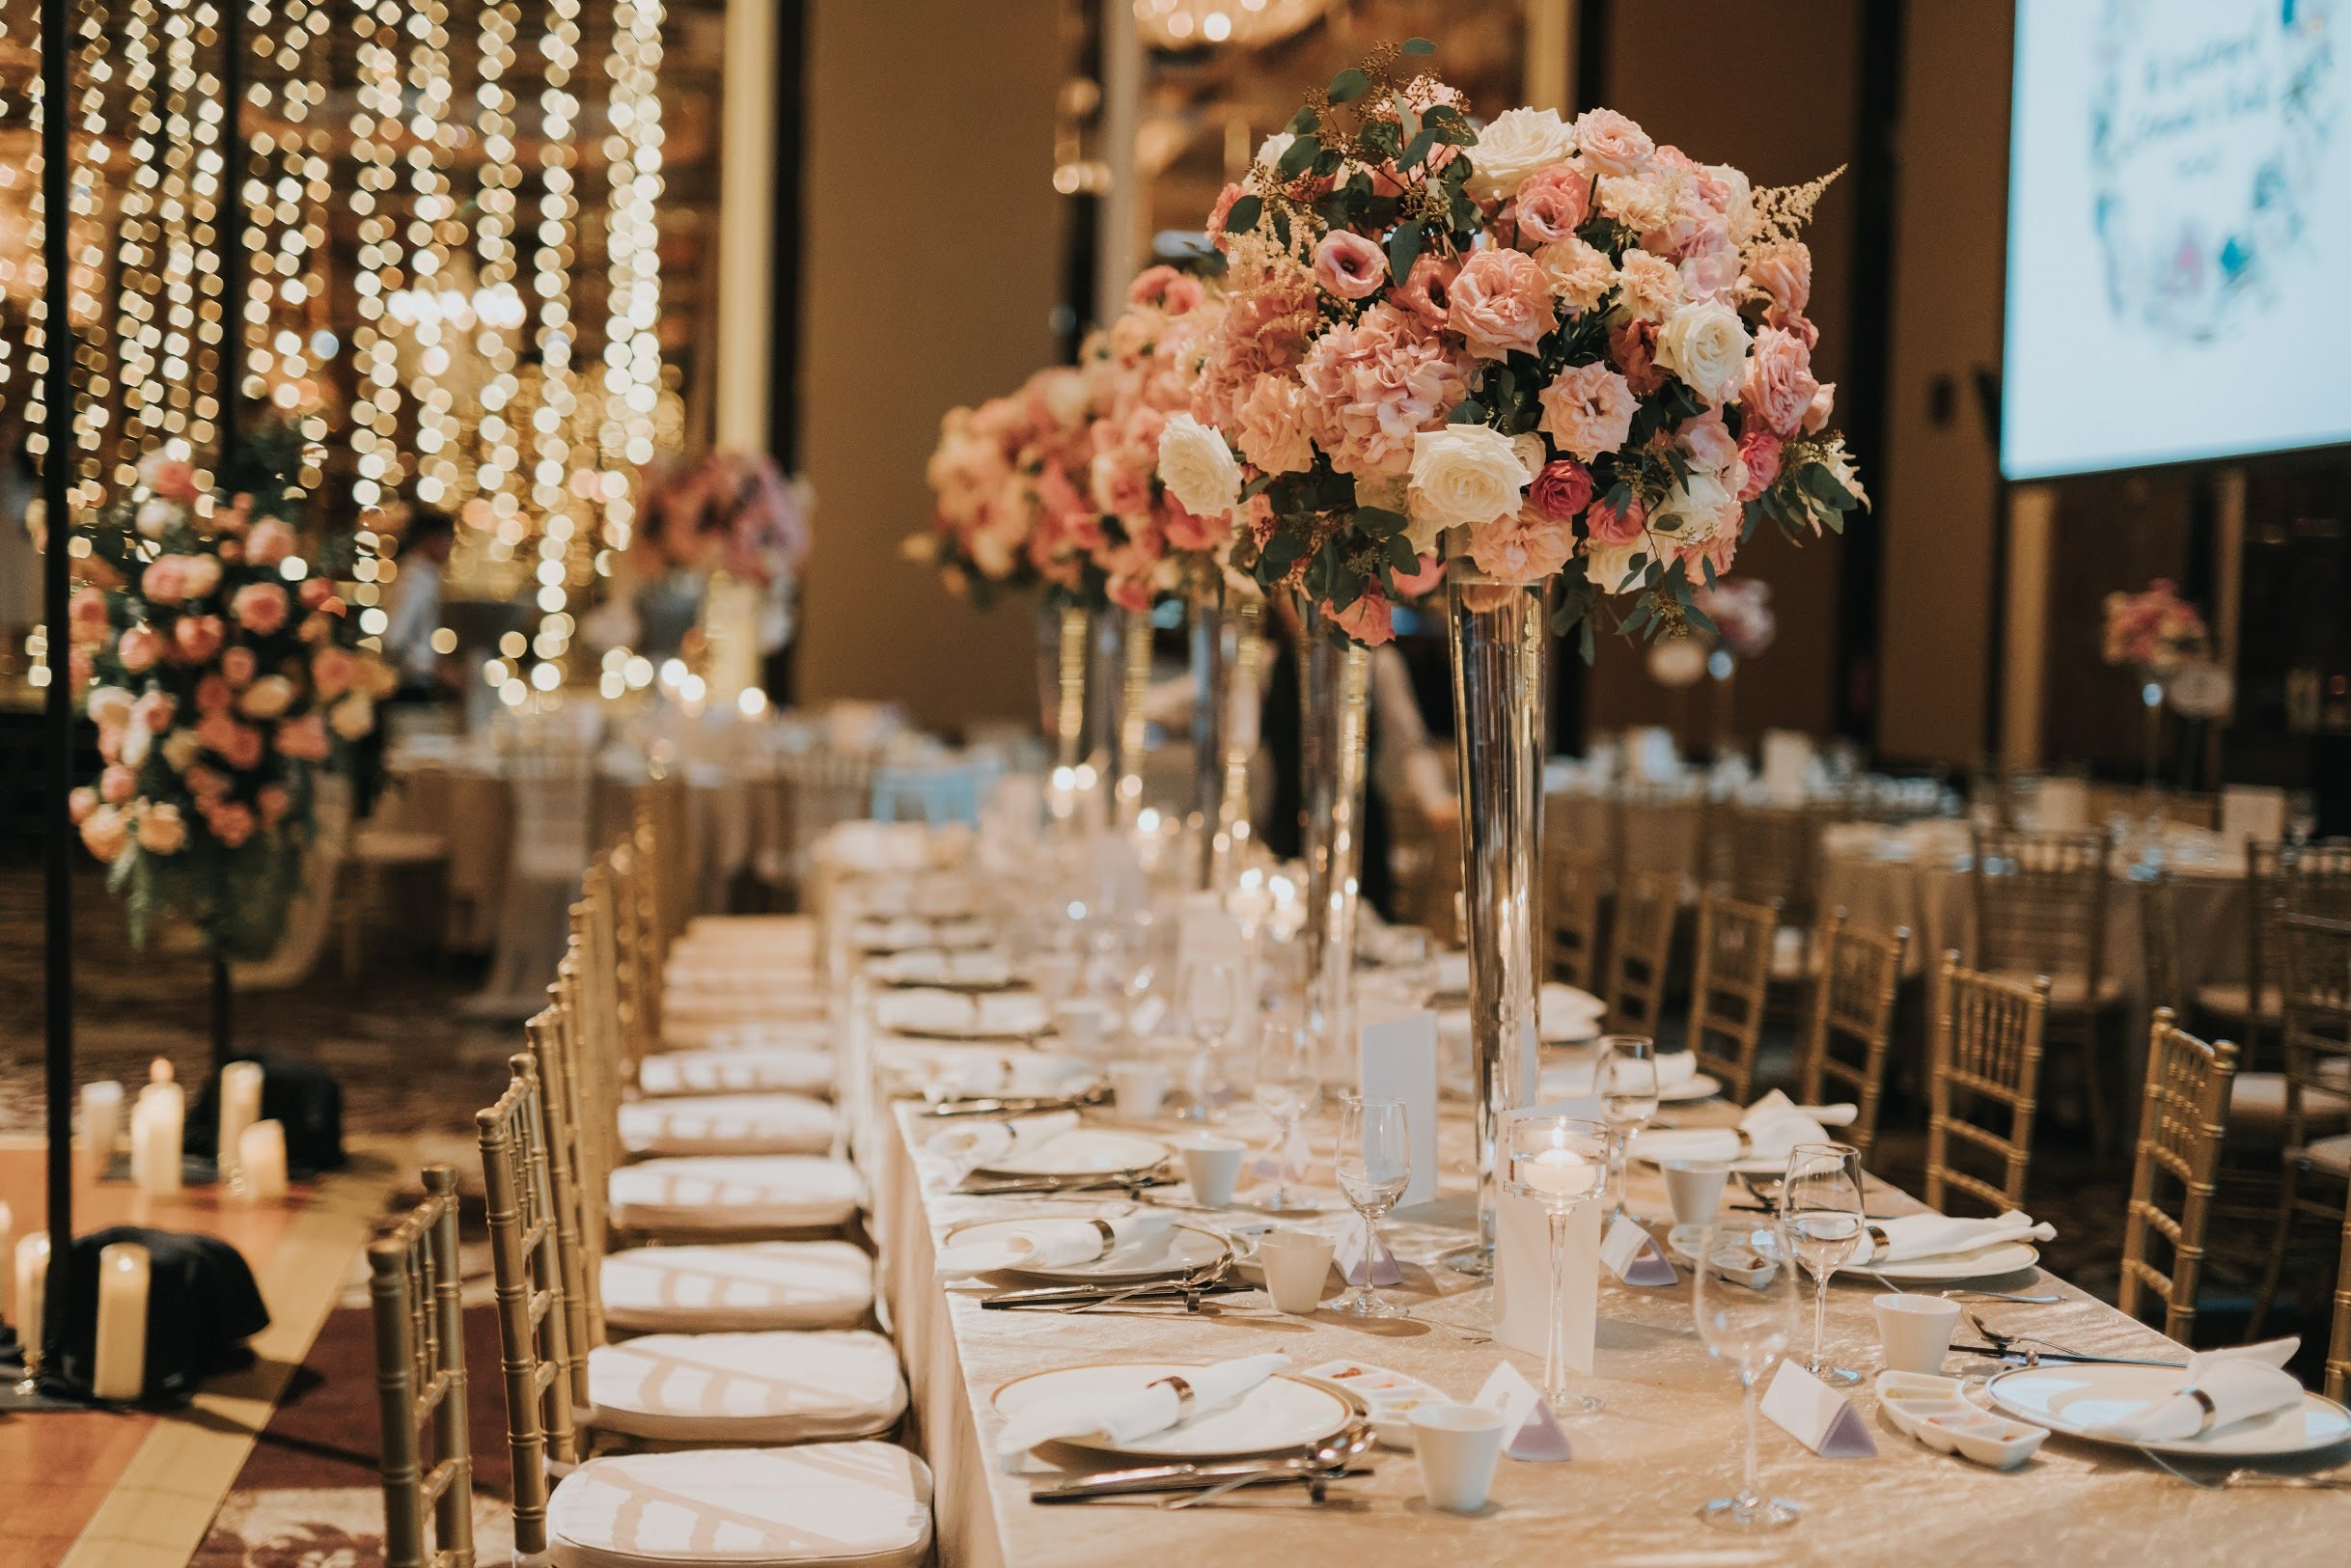 Long dining tables with wedding guests with wedding floral table arrangements in tall crystal vase